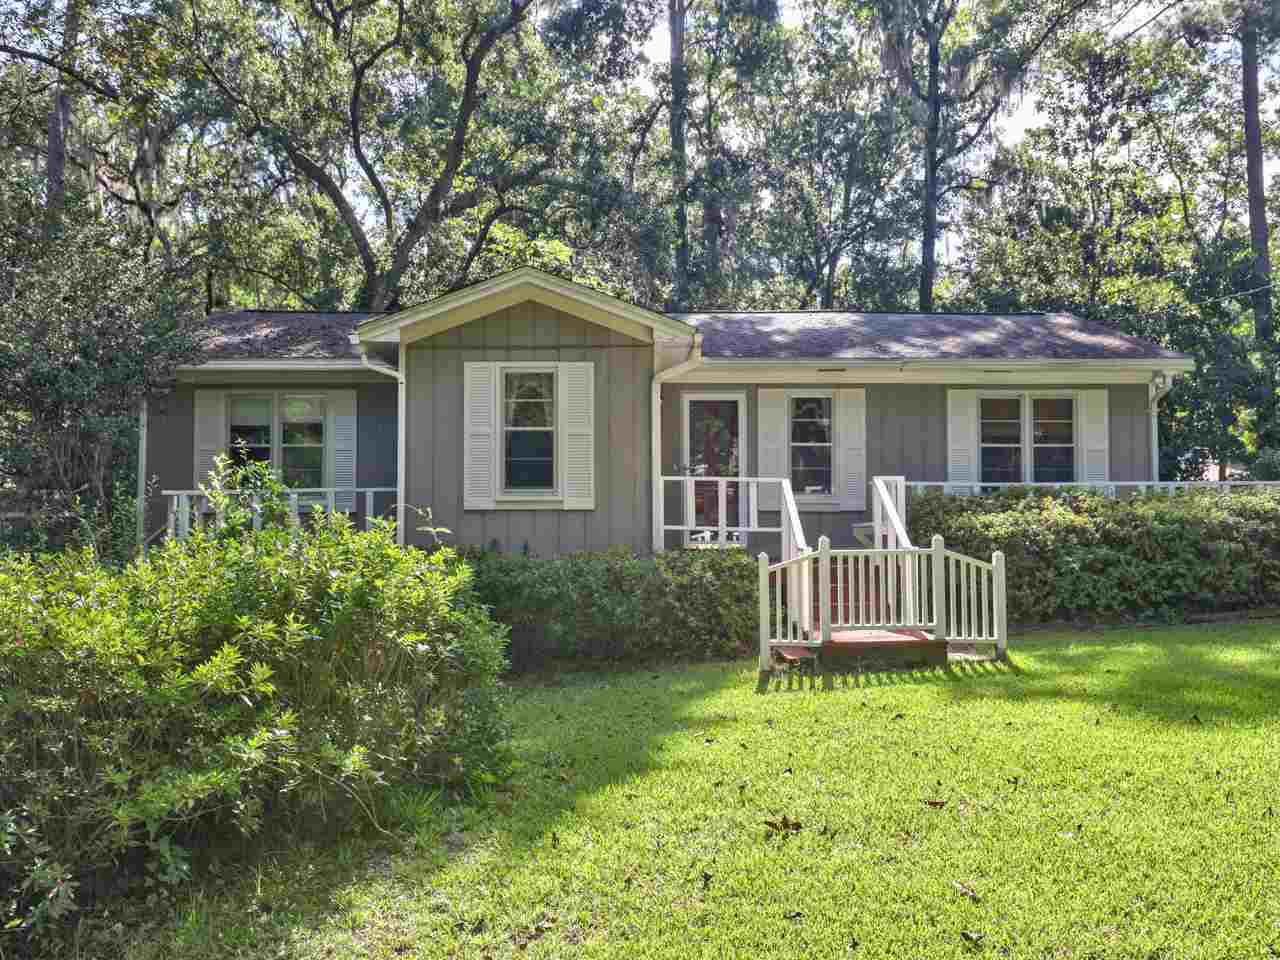 Detached Single Family, Ranch,Traditional - TALLAHASSEE, FL